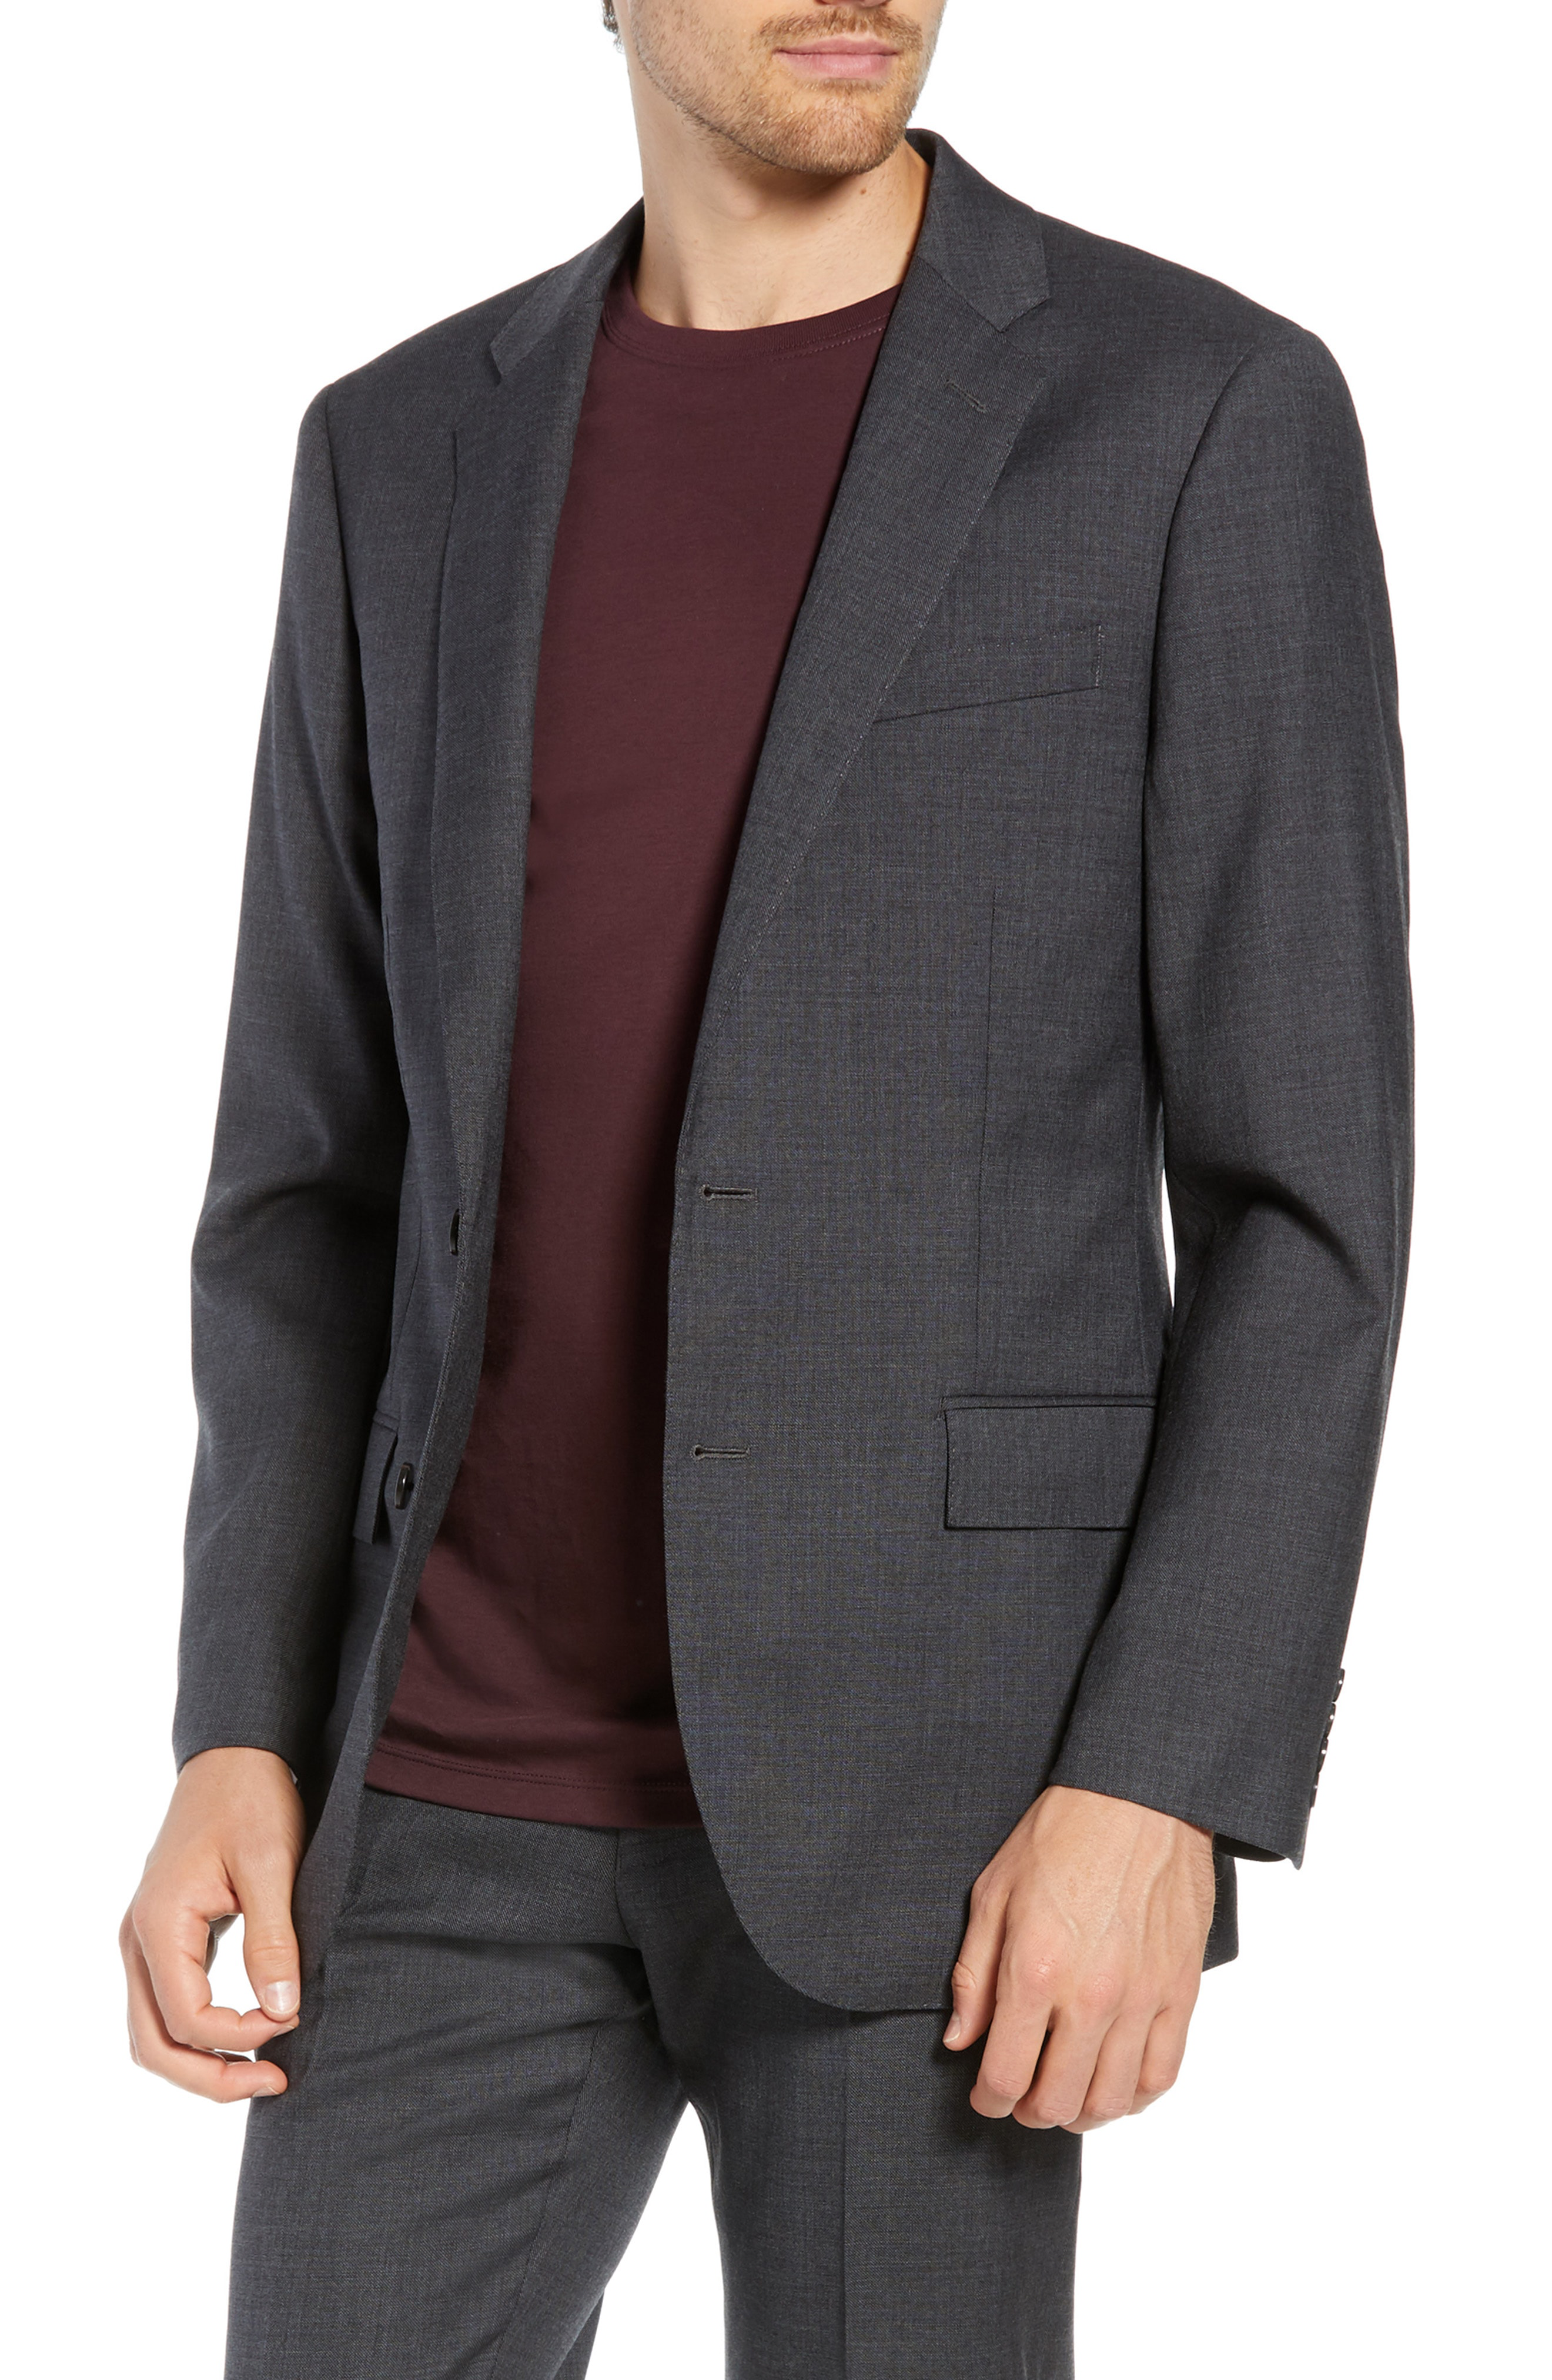 5806298819e0e7 J.Crew Ludlow Slim Fit Four Season Stretch Wool Suit Jacket In Charcoal